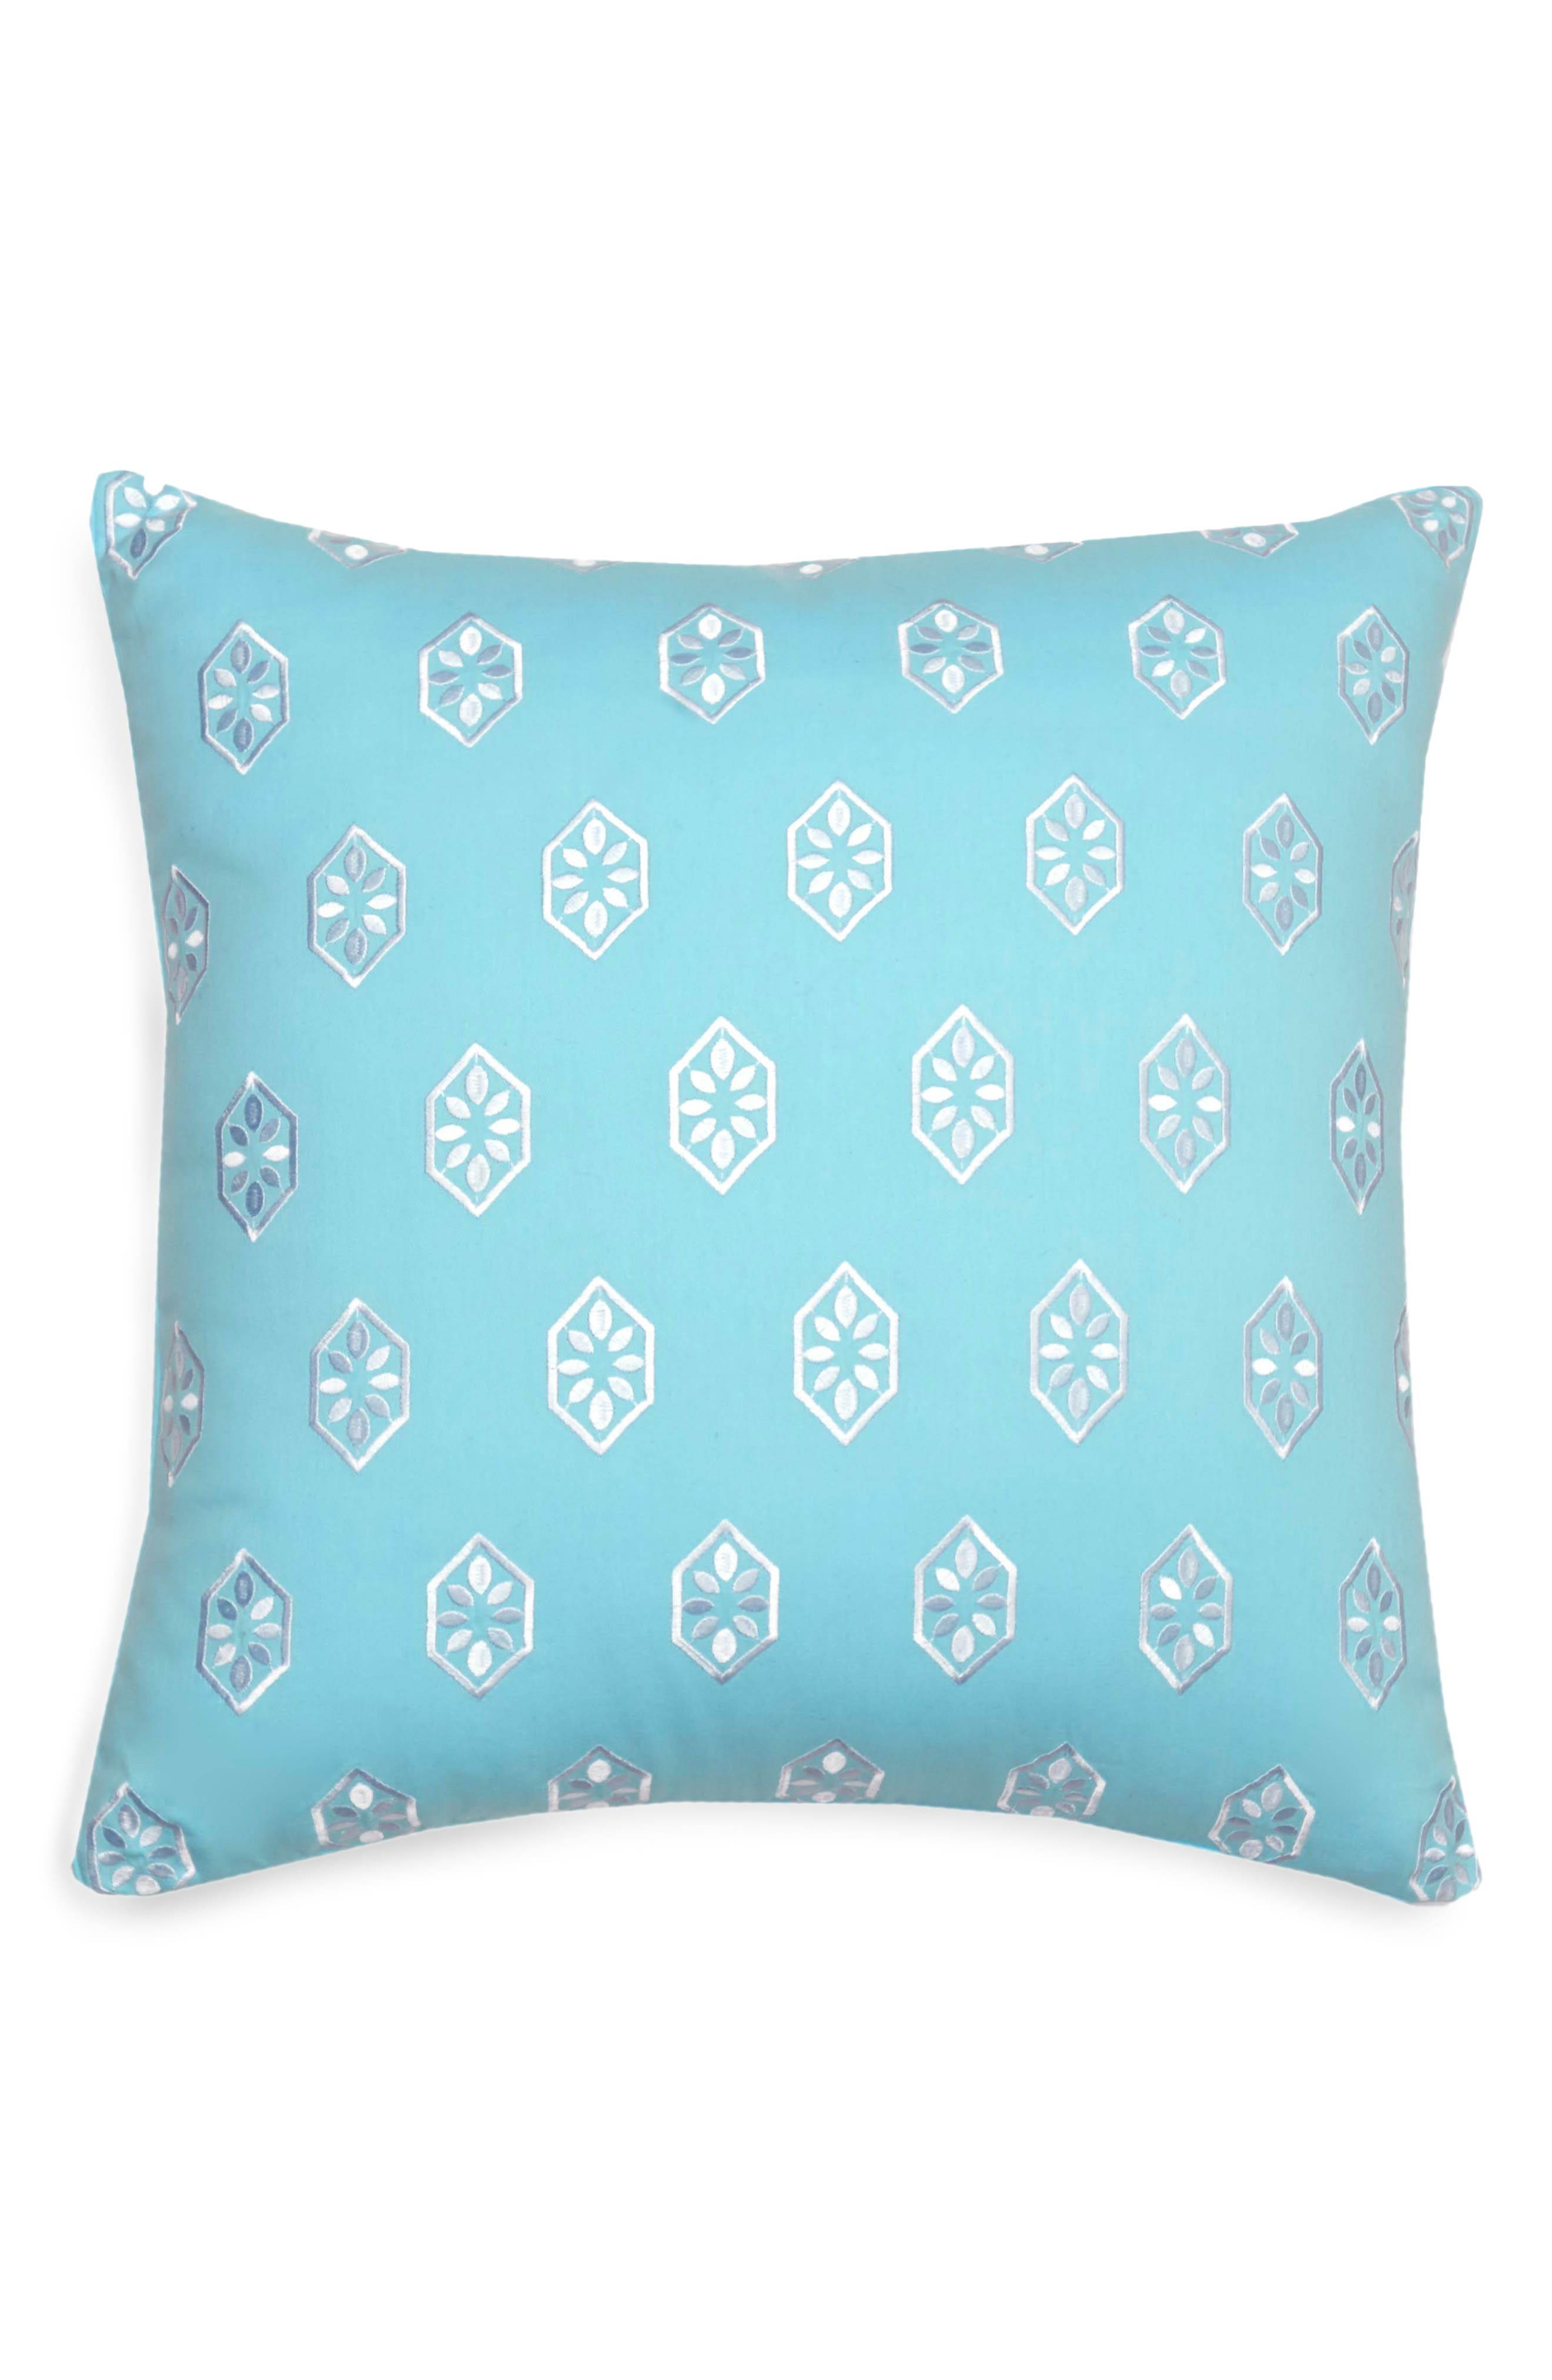 Main Image - Southern Tide Summerville Embroidered Pillow